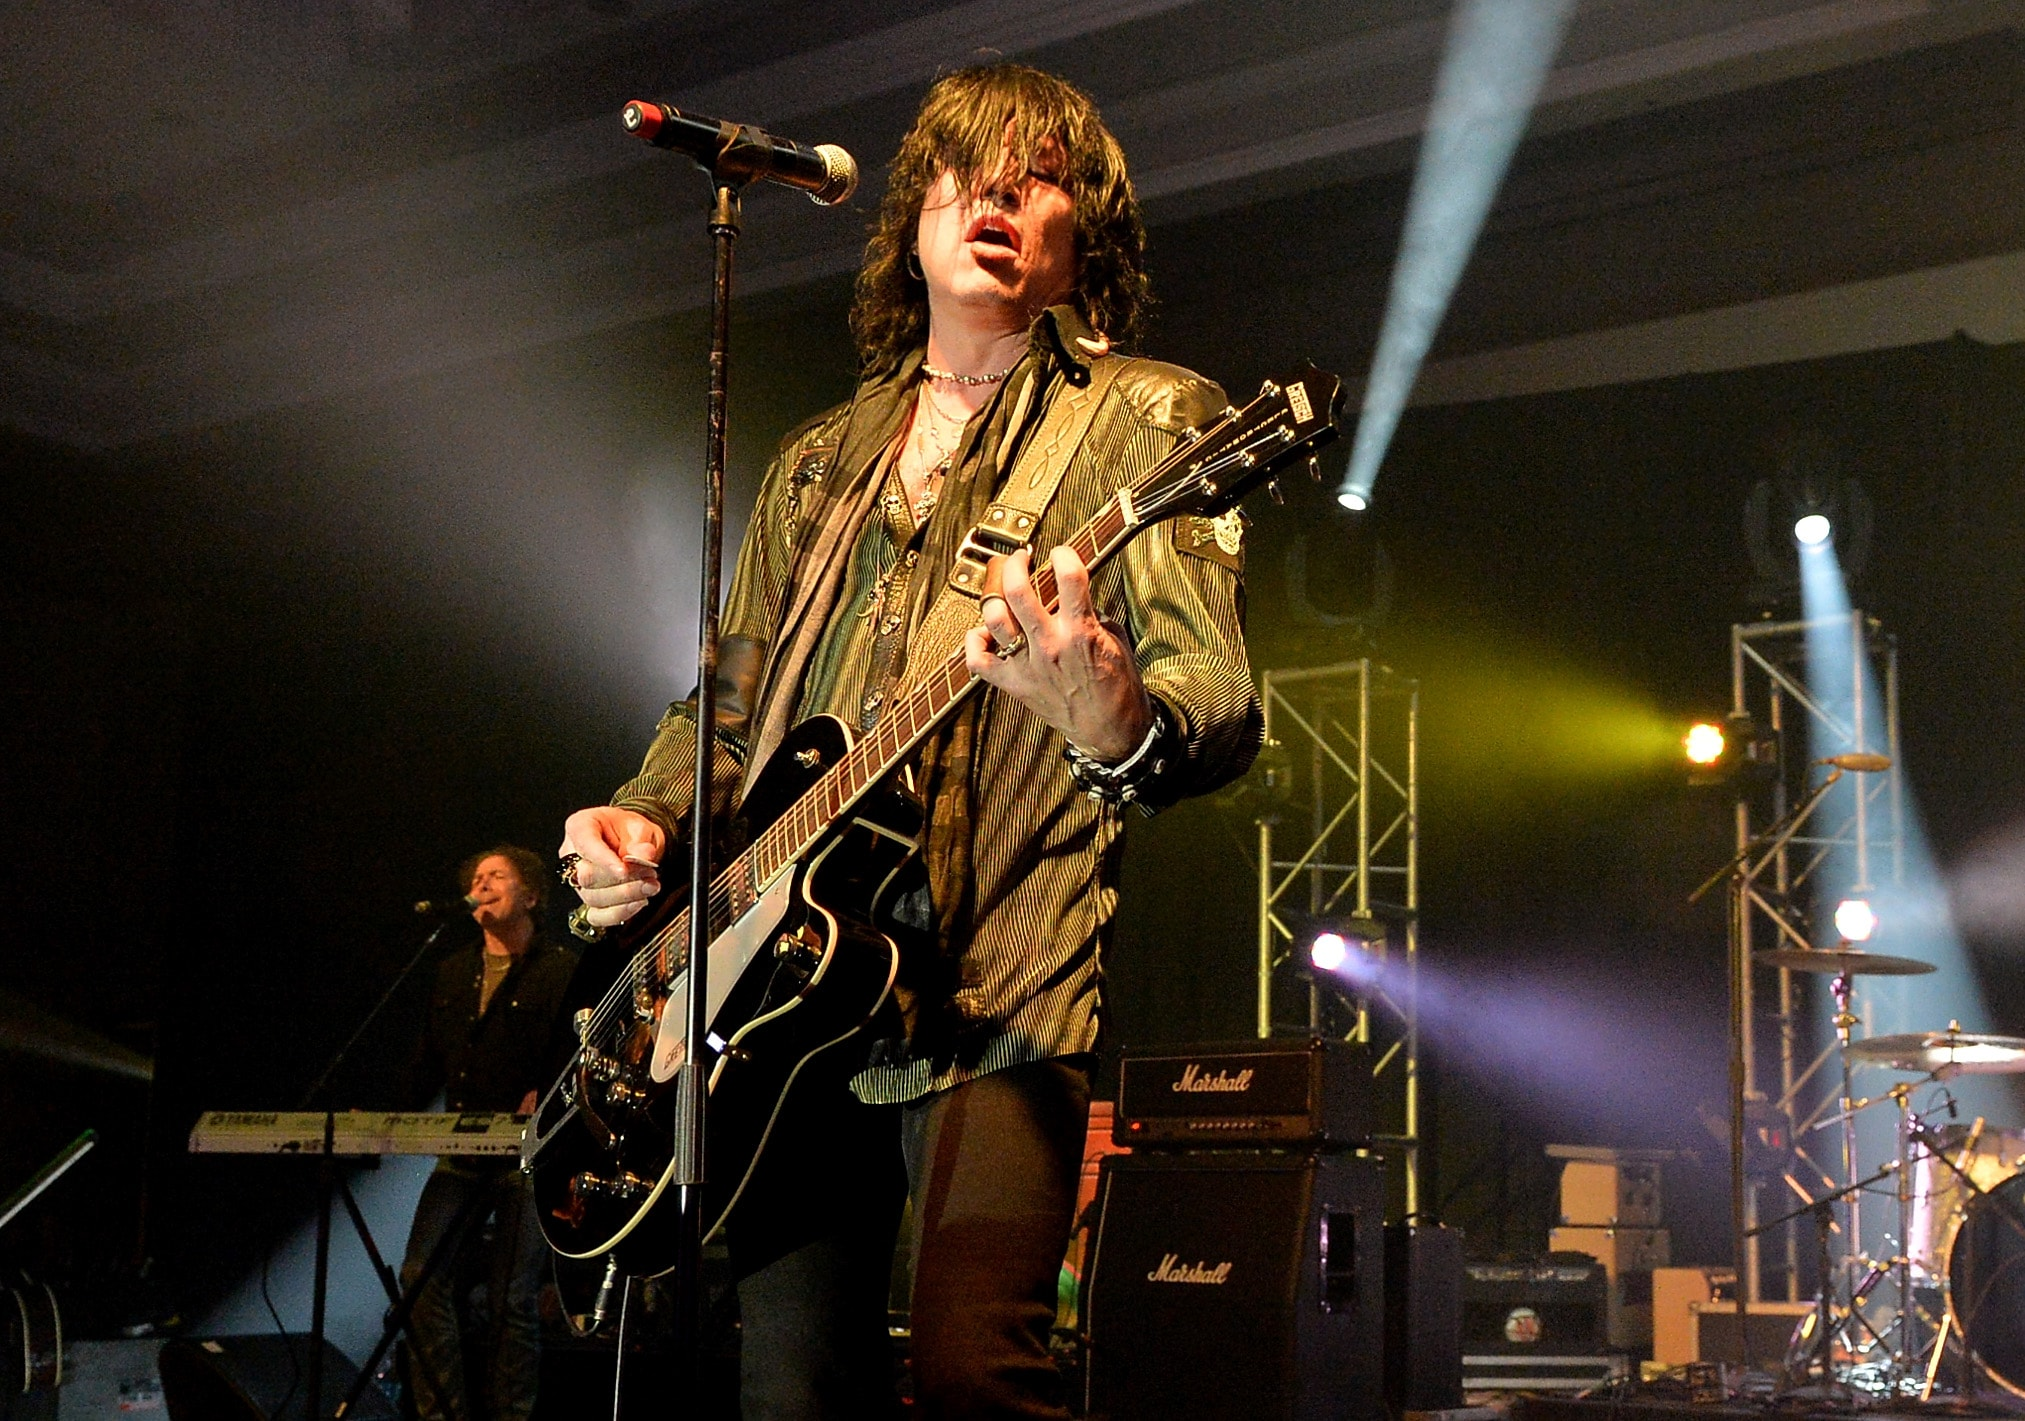 NASHVILLE, TN - OCTOBER 20: Tom Keifer of Cinderella performs at the Agency For Performing Arts party during the IEBA 2013 Conference - Day 1 at the The Omni Hotel on October 20, 2013 in Nashville, Tennessee.